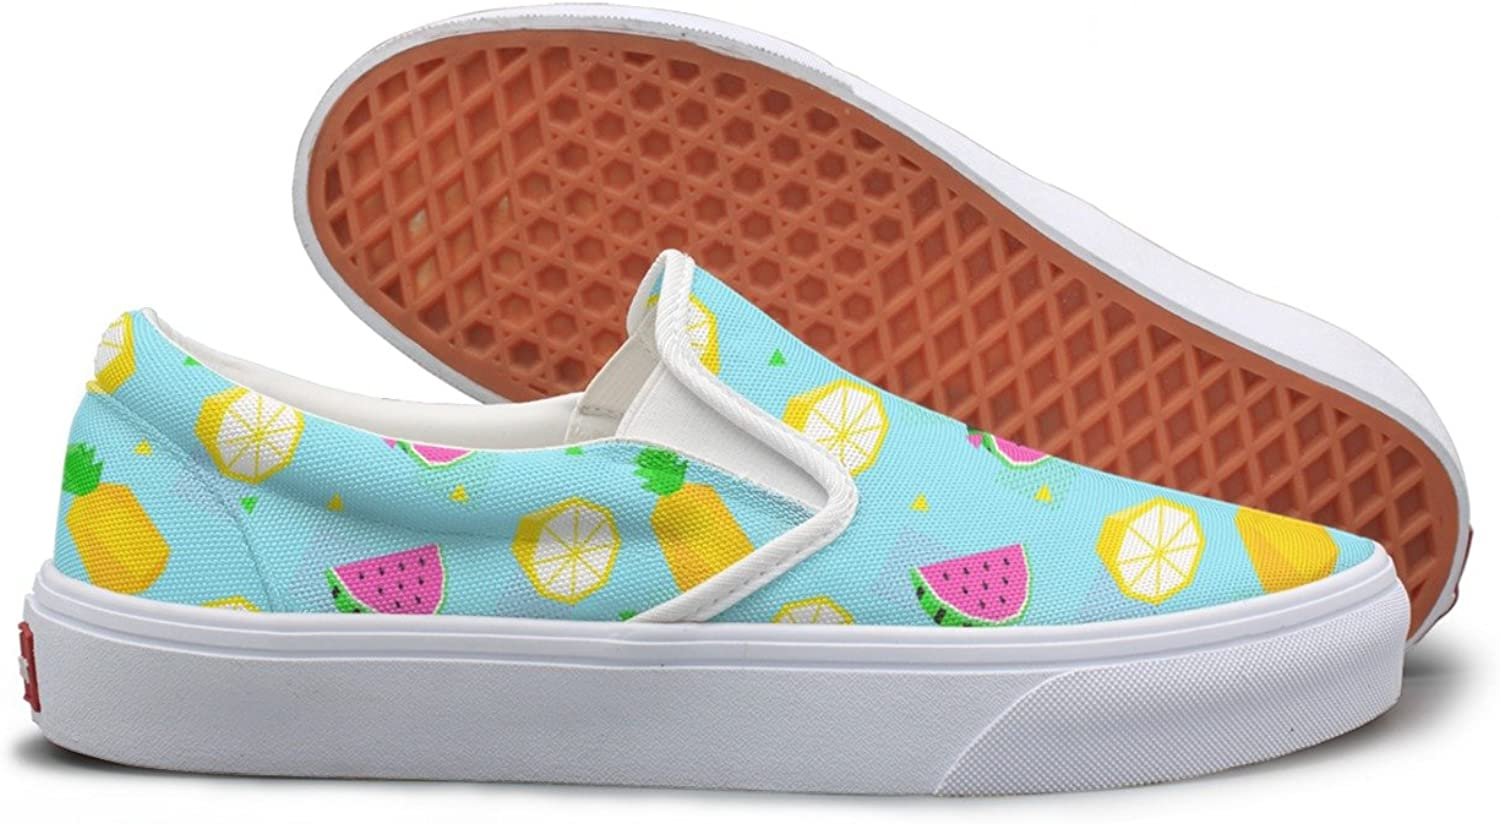 SEERTED Summer Watermelon Pineapple bluee Cartoon Canvas Sneakers for Women